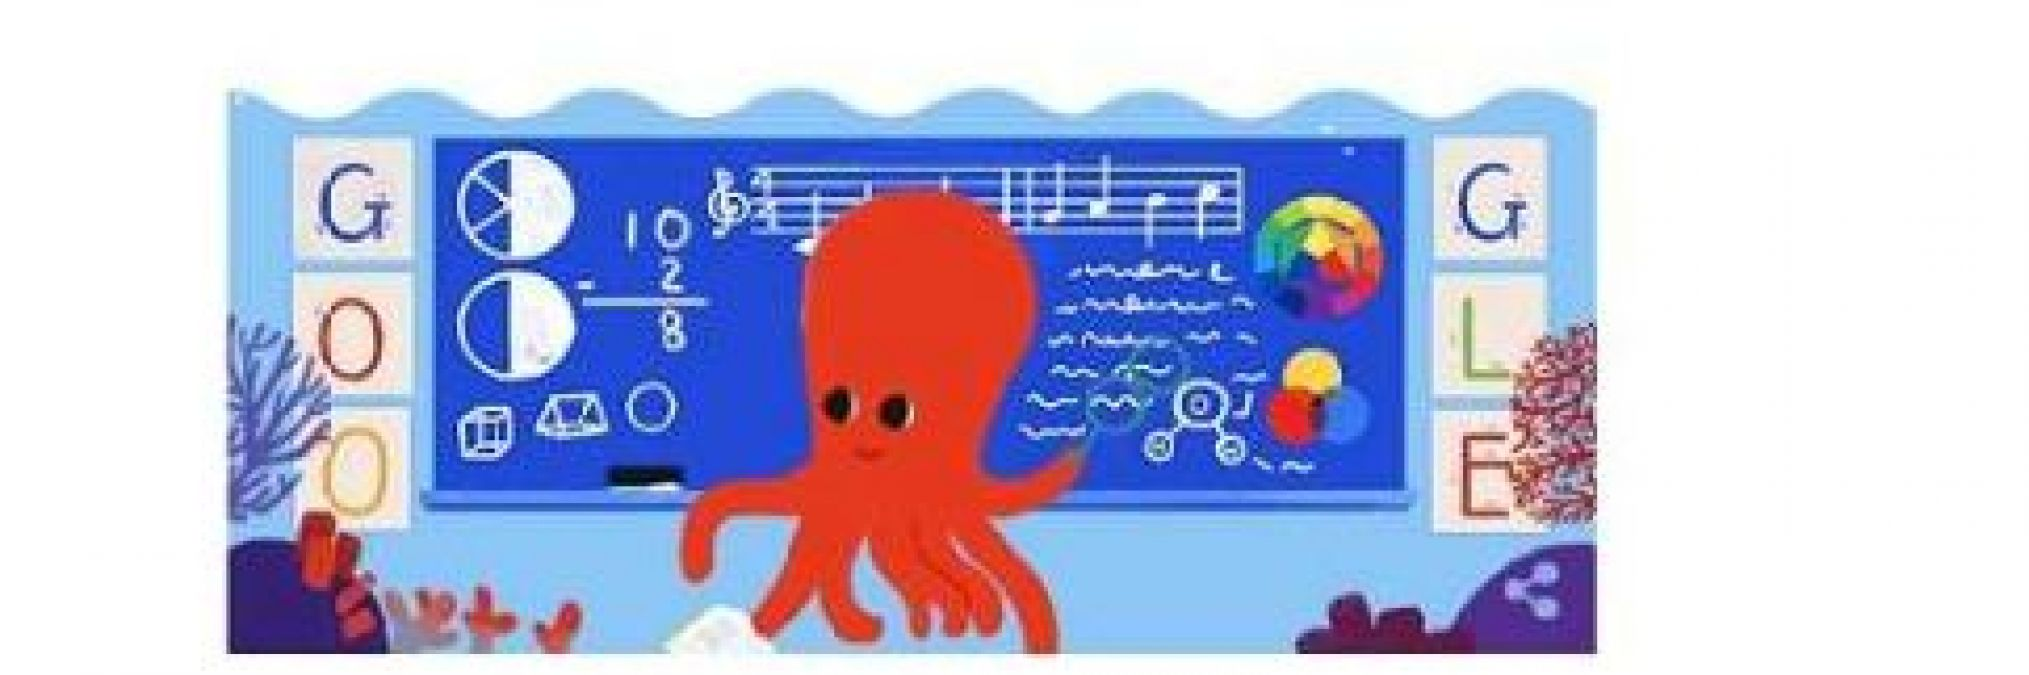 Google celebrates Teachers' Day with animated octopus doodle